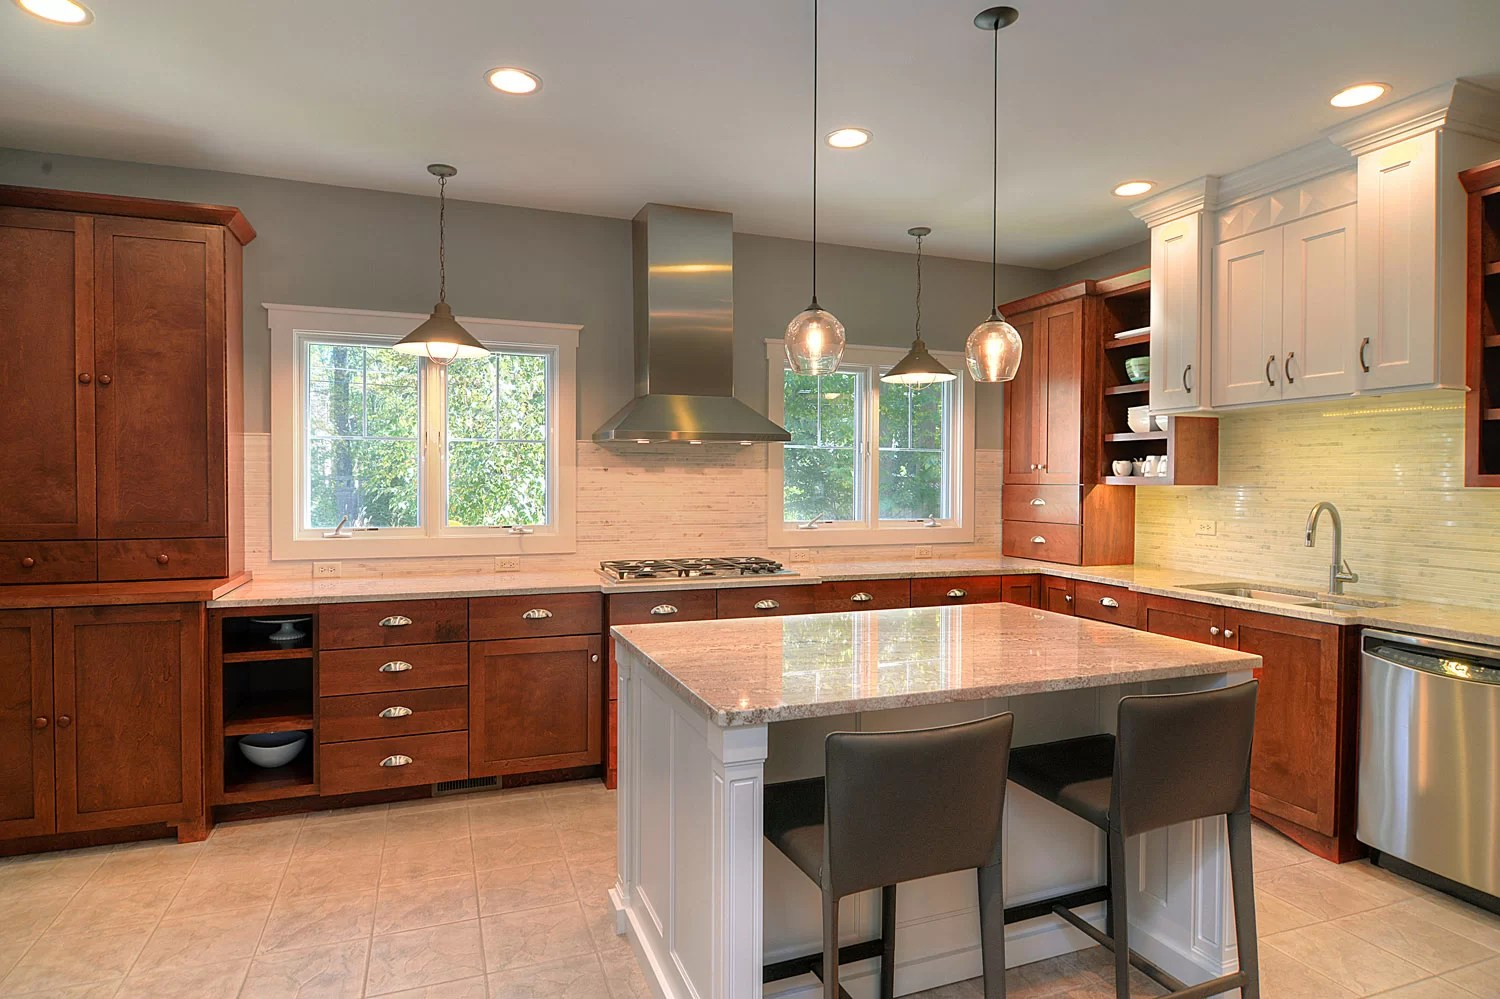 brian & mary's kitchen remodel pictures | home remodeling